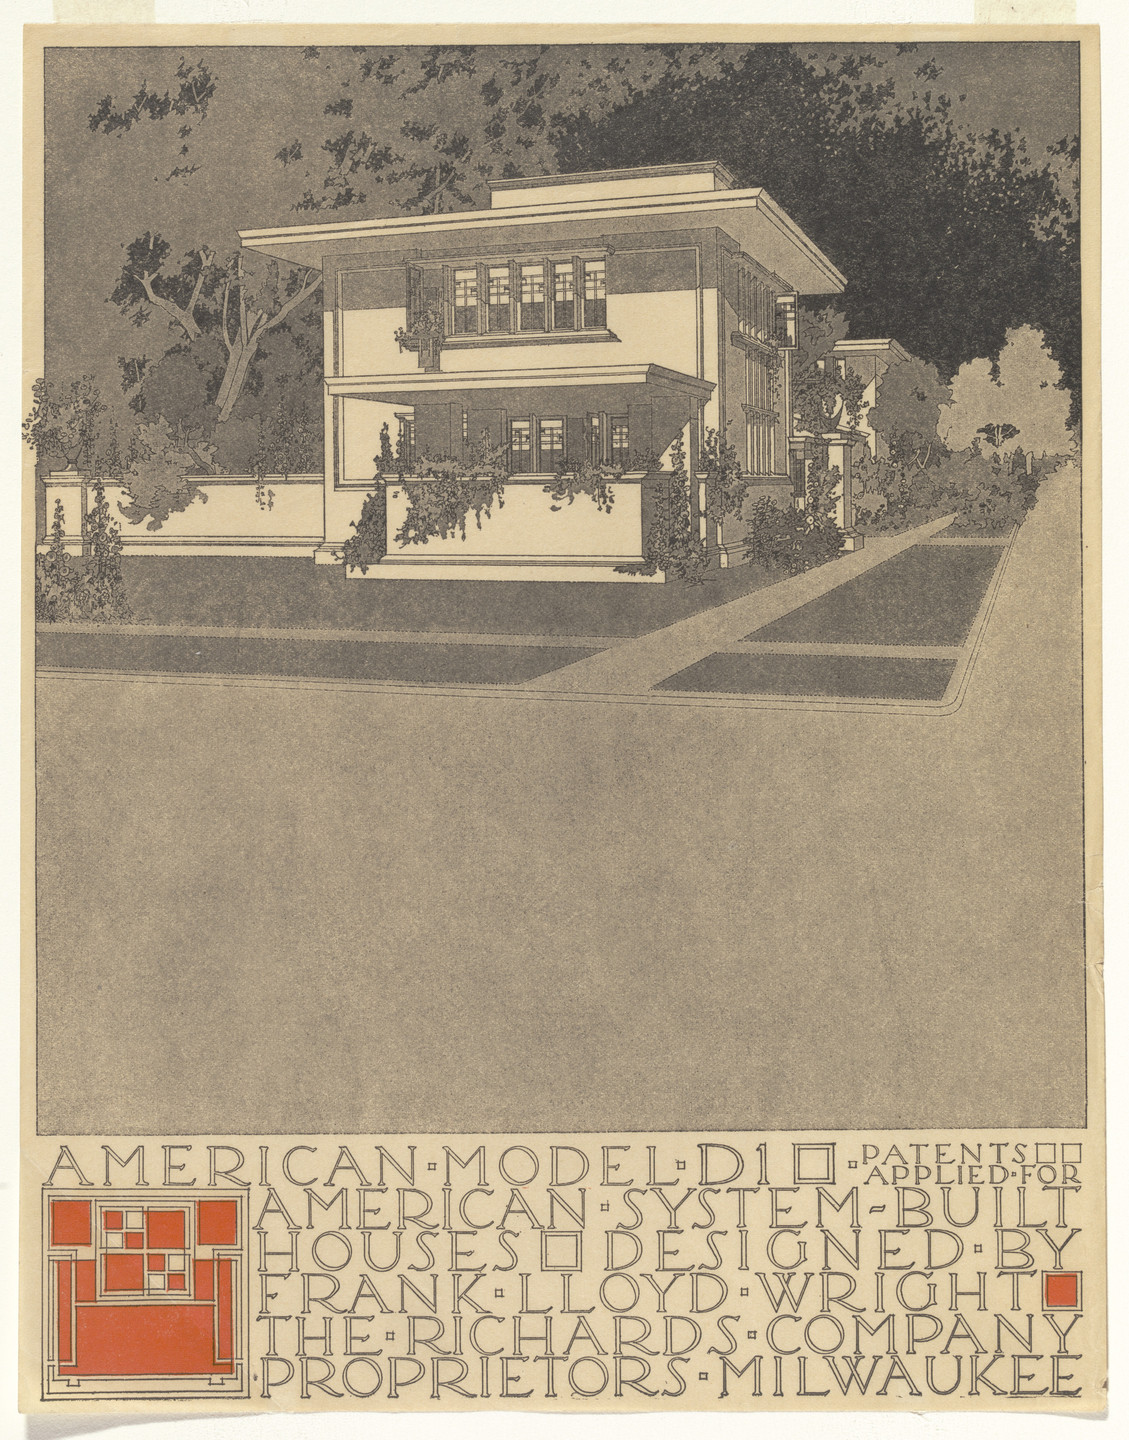 Frank Lloyd Wright. American System-Built Houses for The Richards Company project, Milwaukee, Wisconsin (Exterior perspective). 1915-17